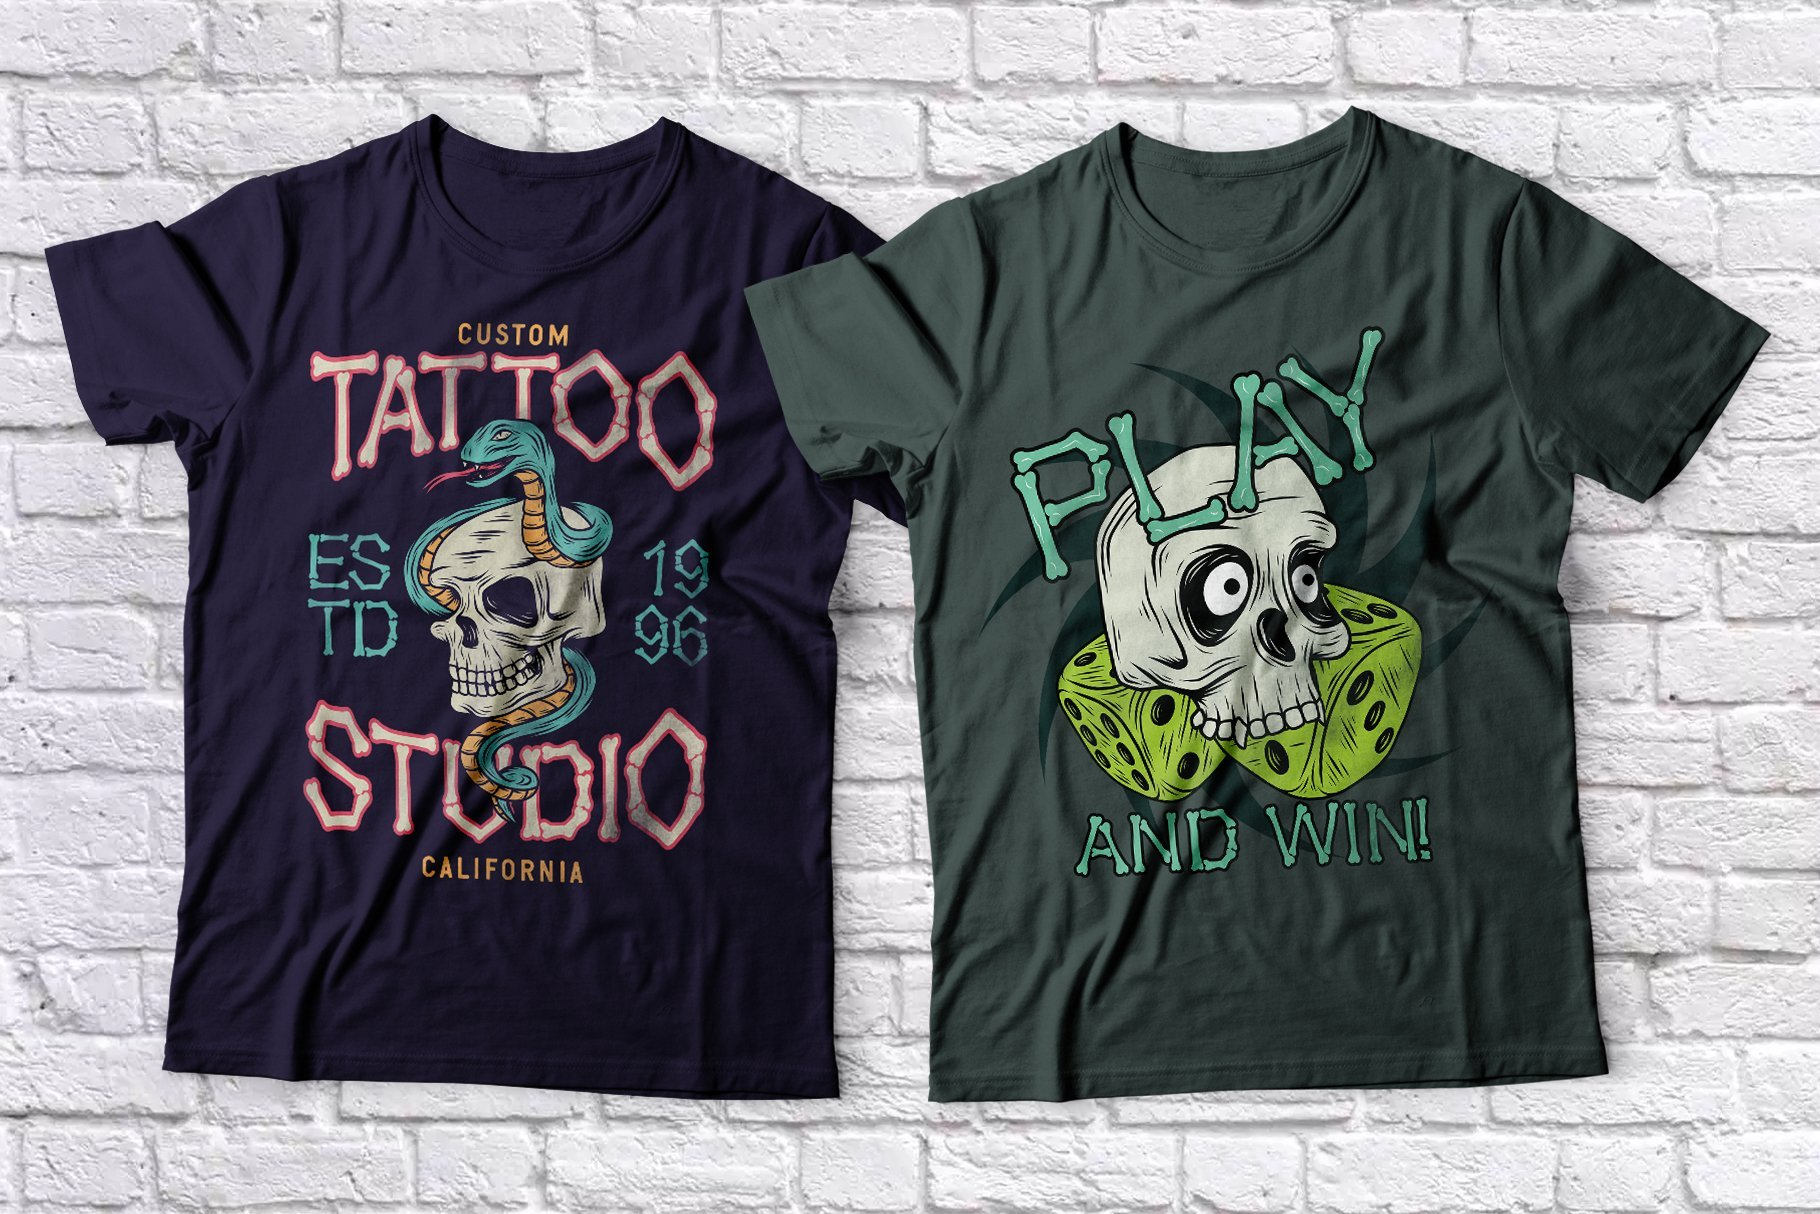 Funny and themed t-shirts.